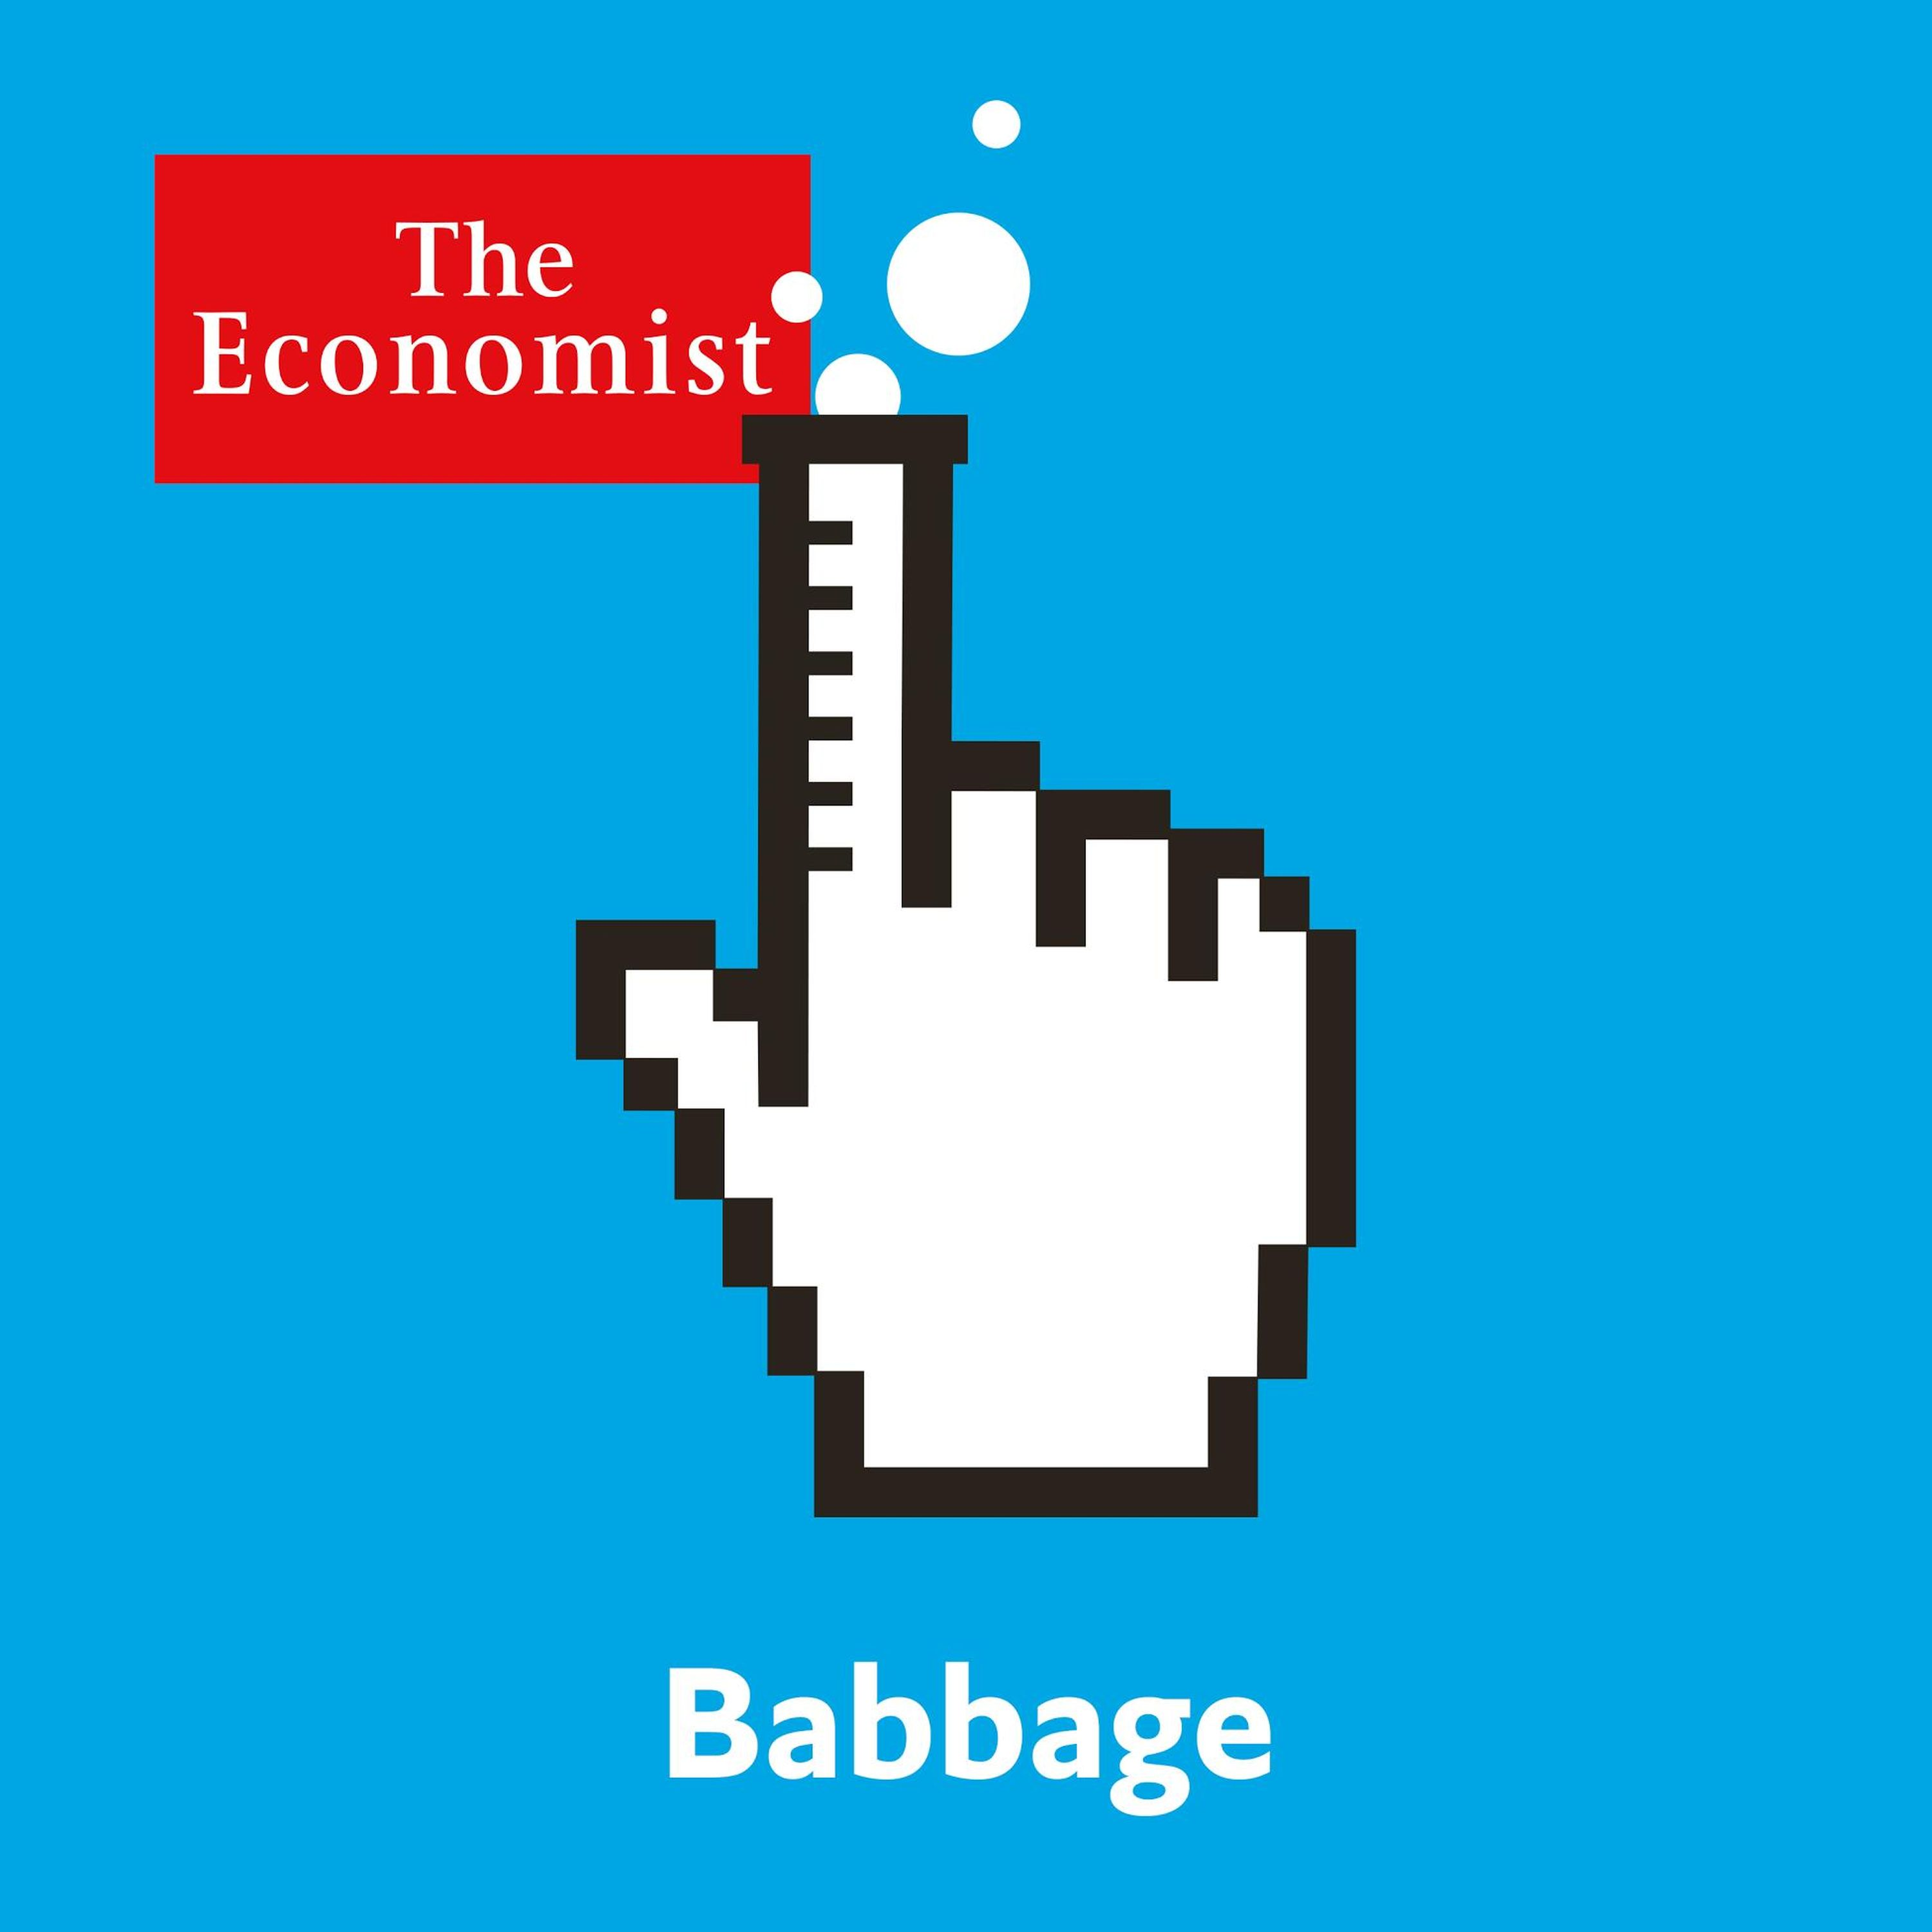 Babbage: Can the curve be flattened?